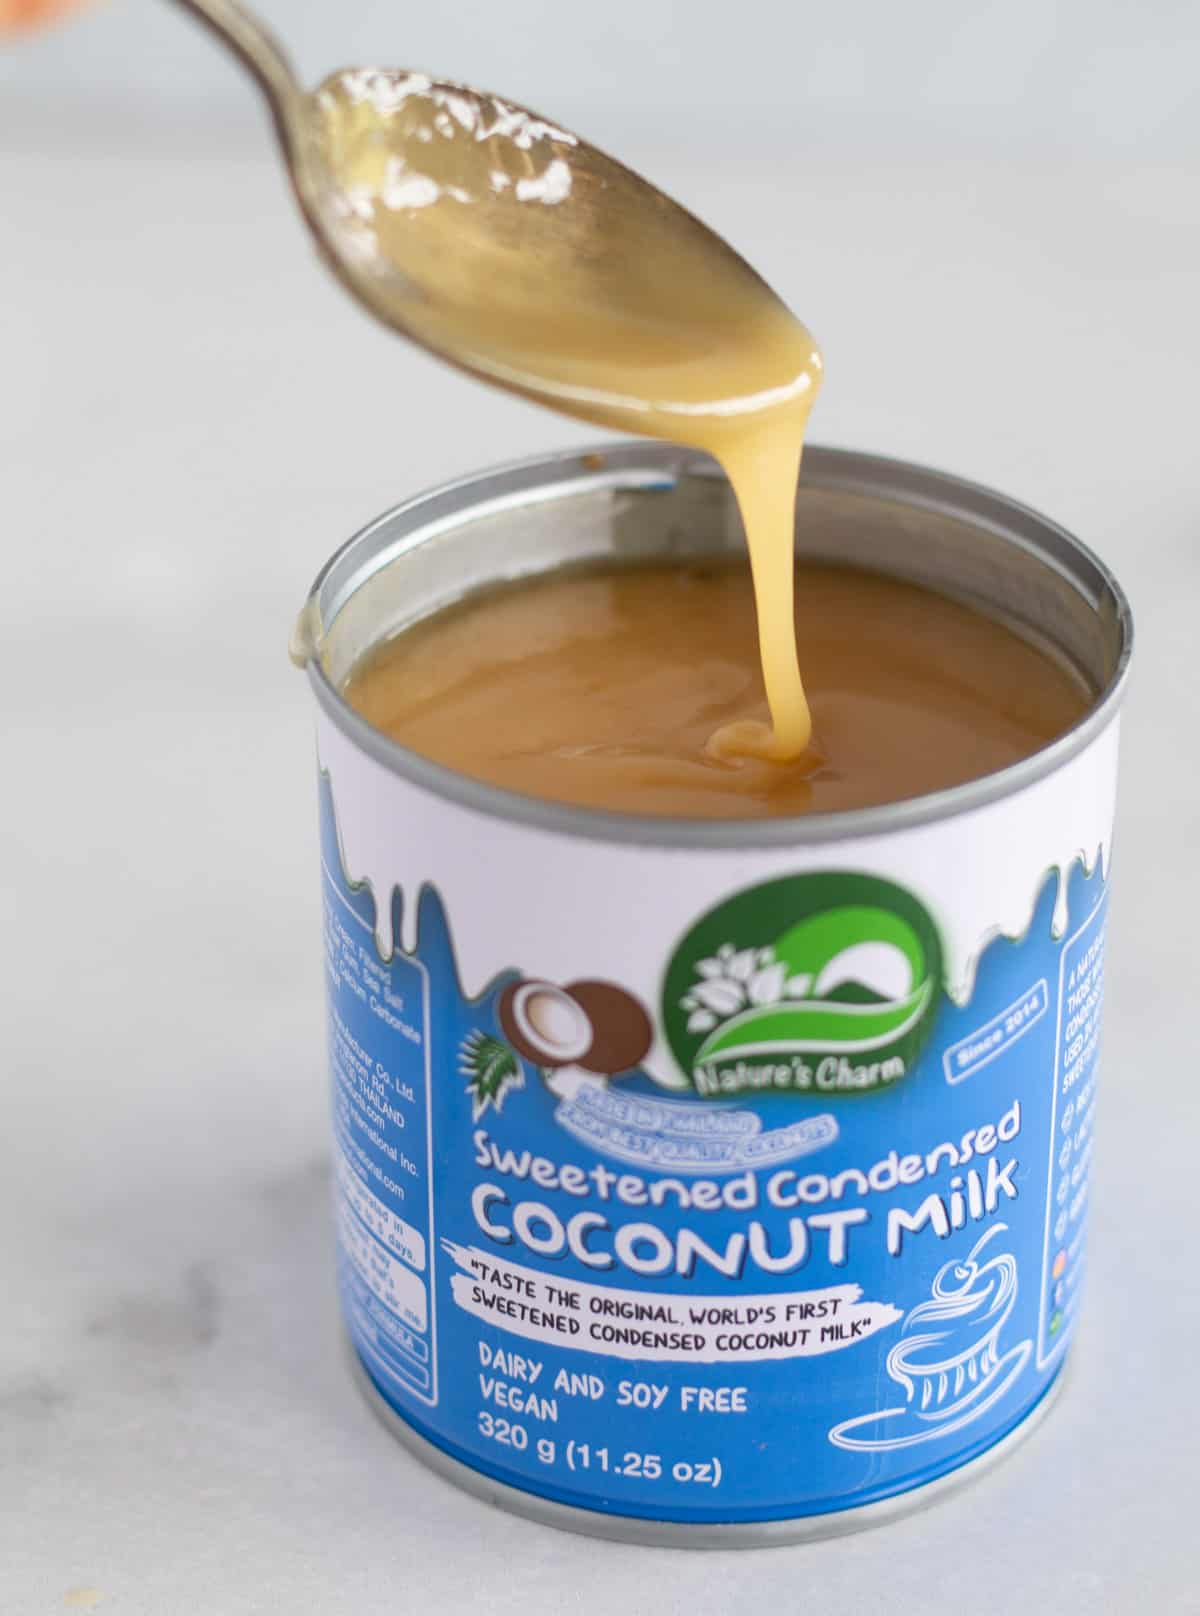 spooning dulce de leche out of the can